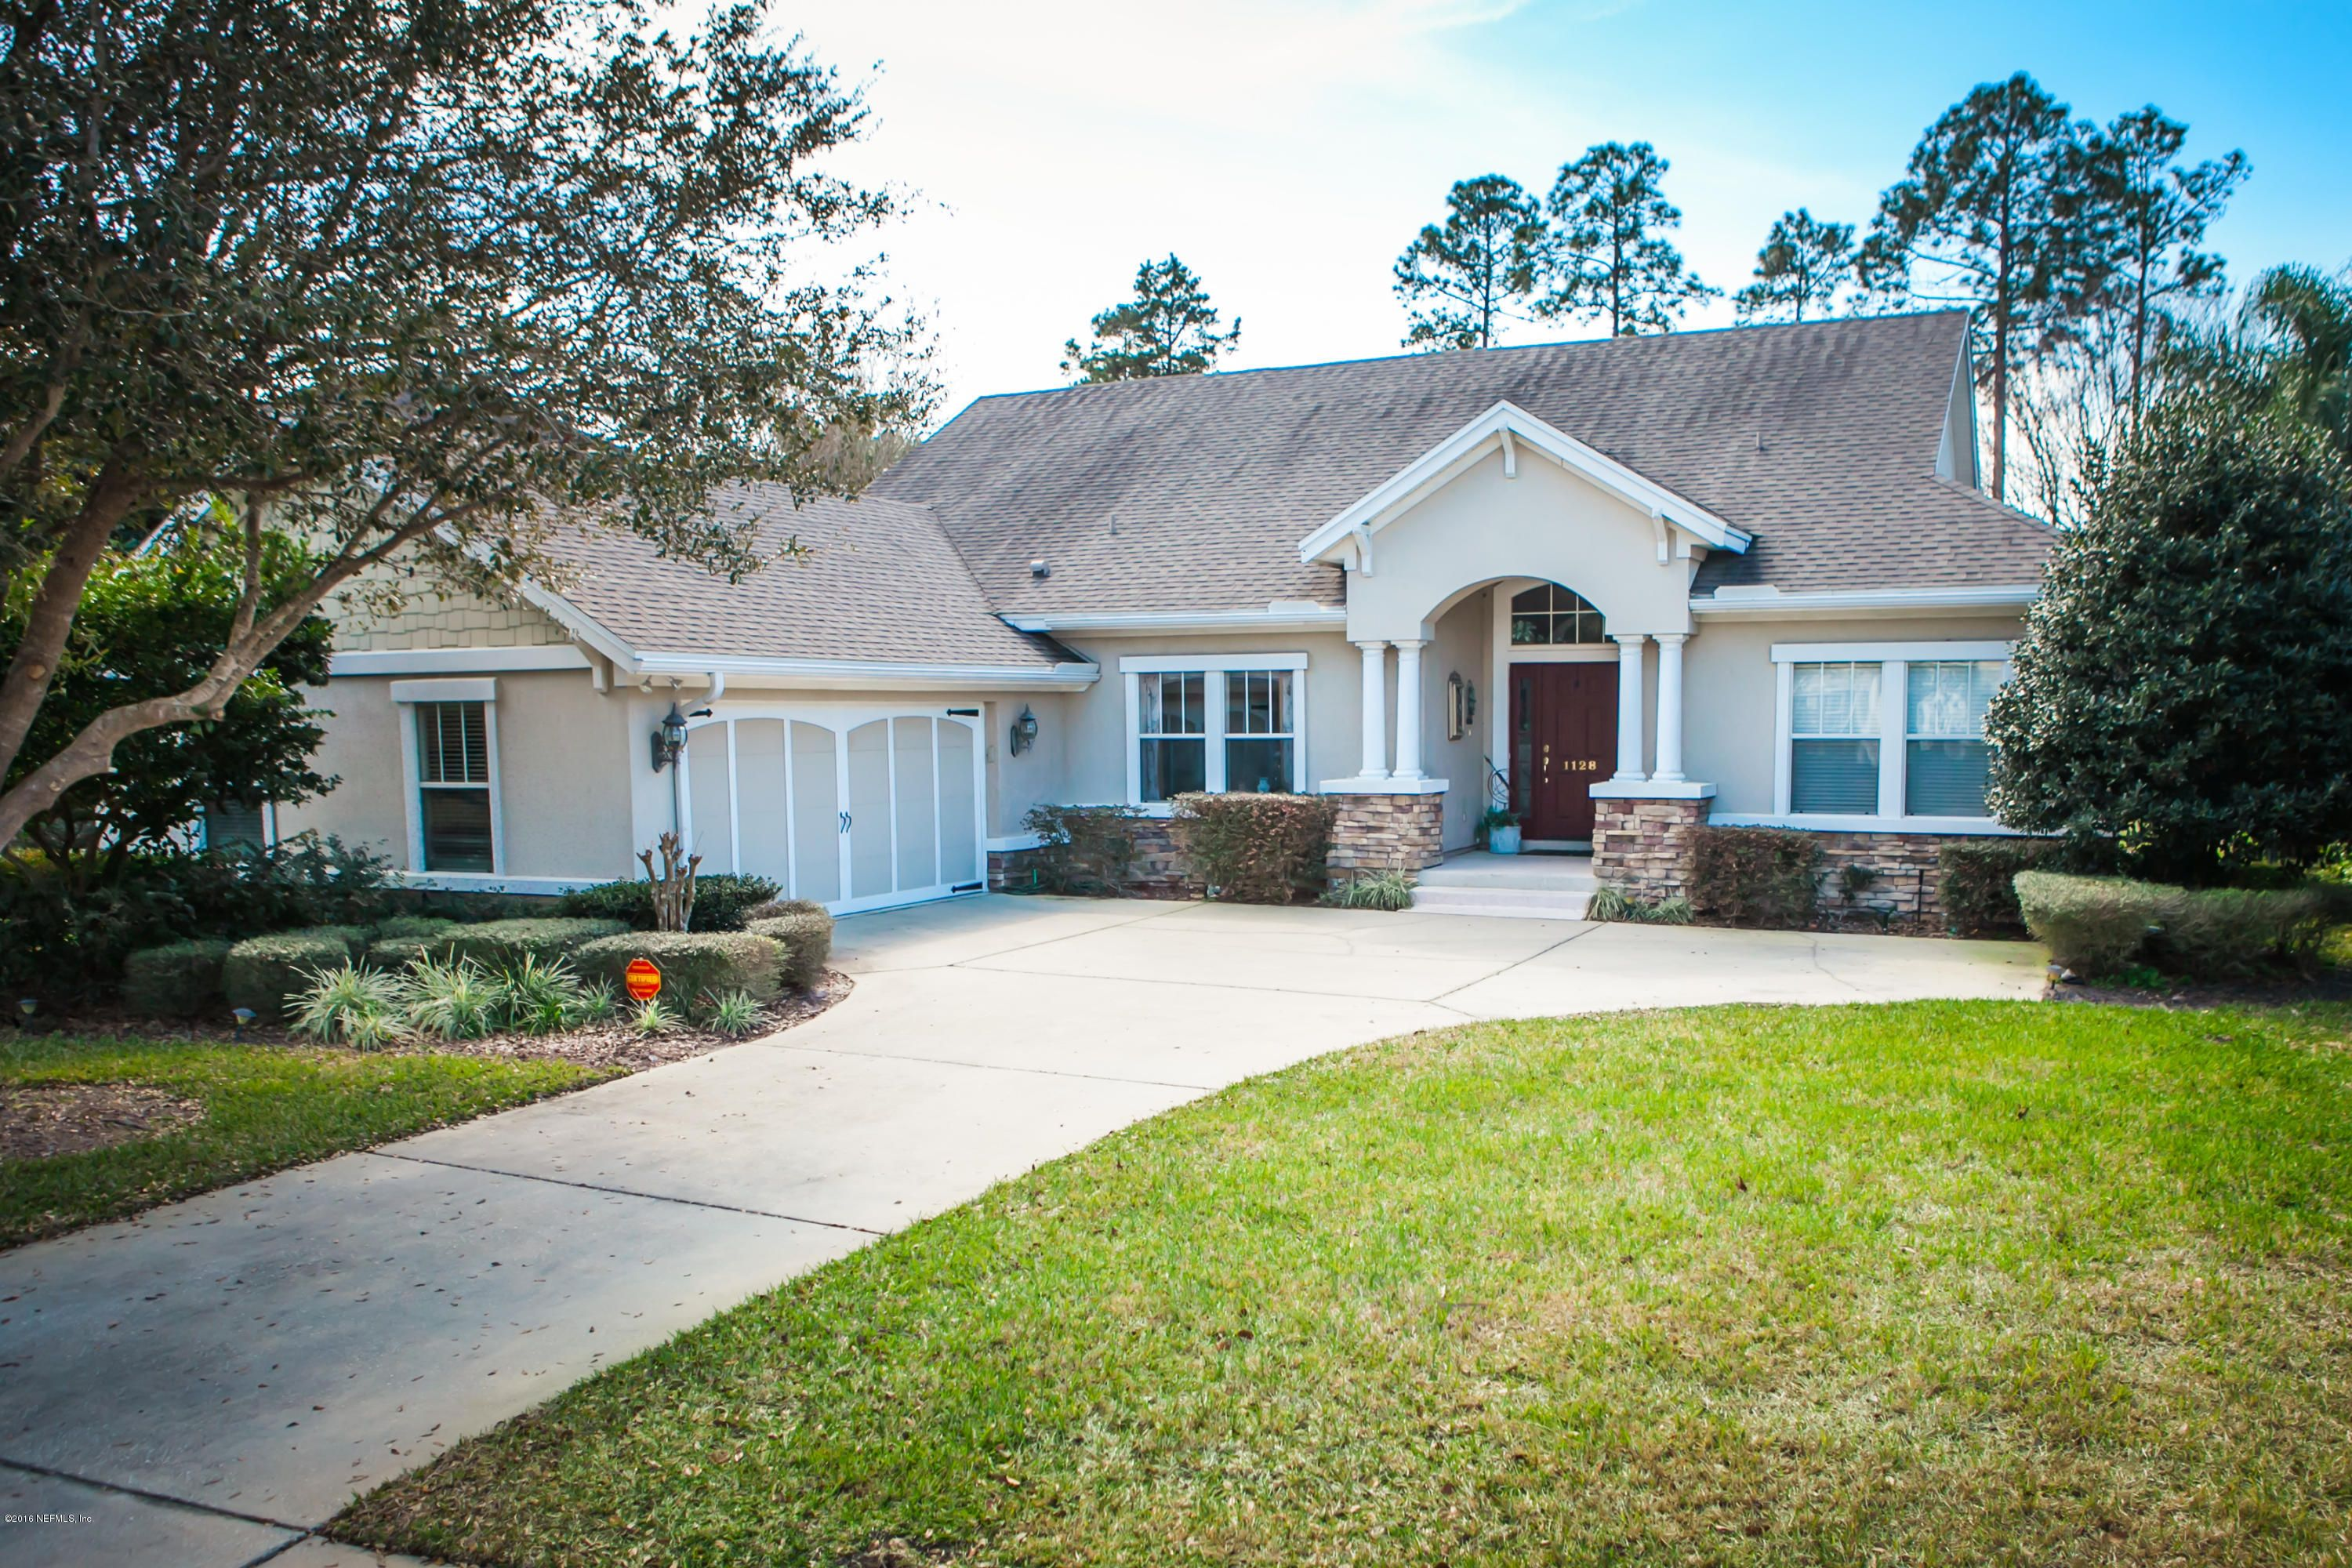 1128 Eagle Point Dr St Augustine Fl 32092 Menton And Ballou Group St Augustine Menton Eagle Point